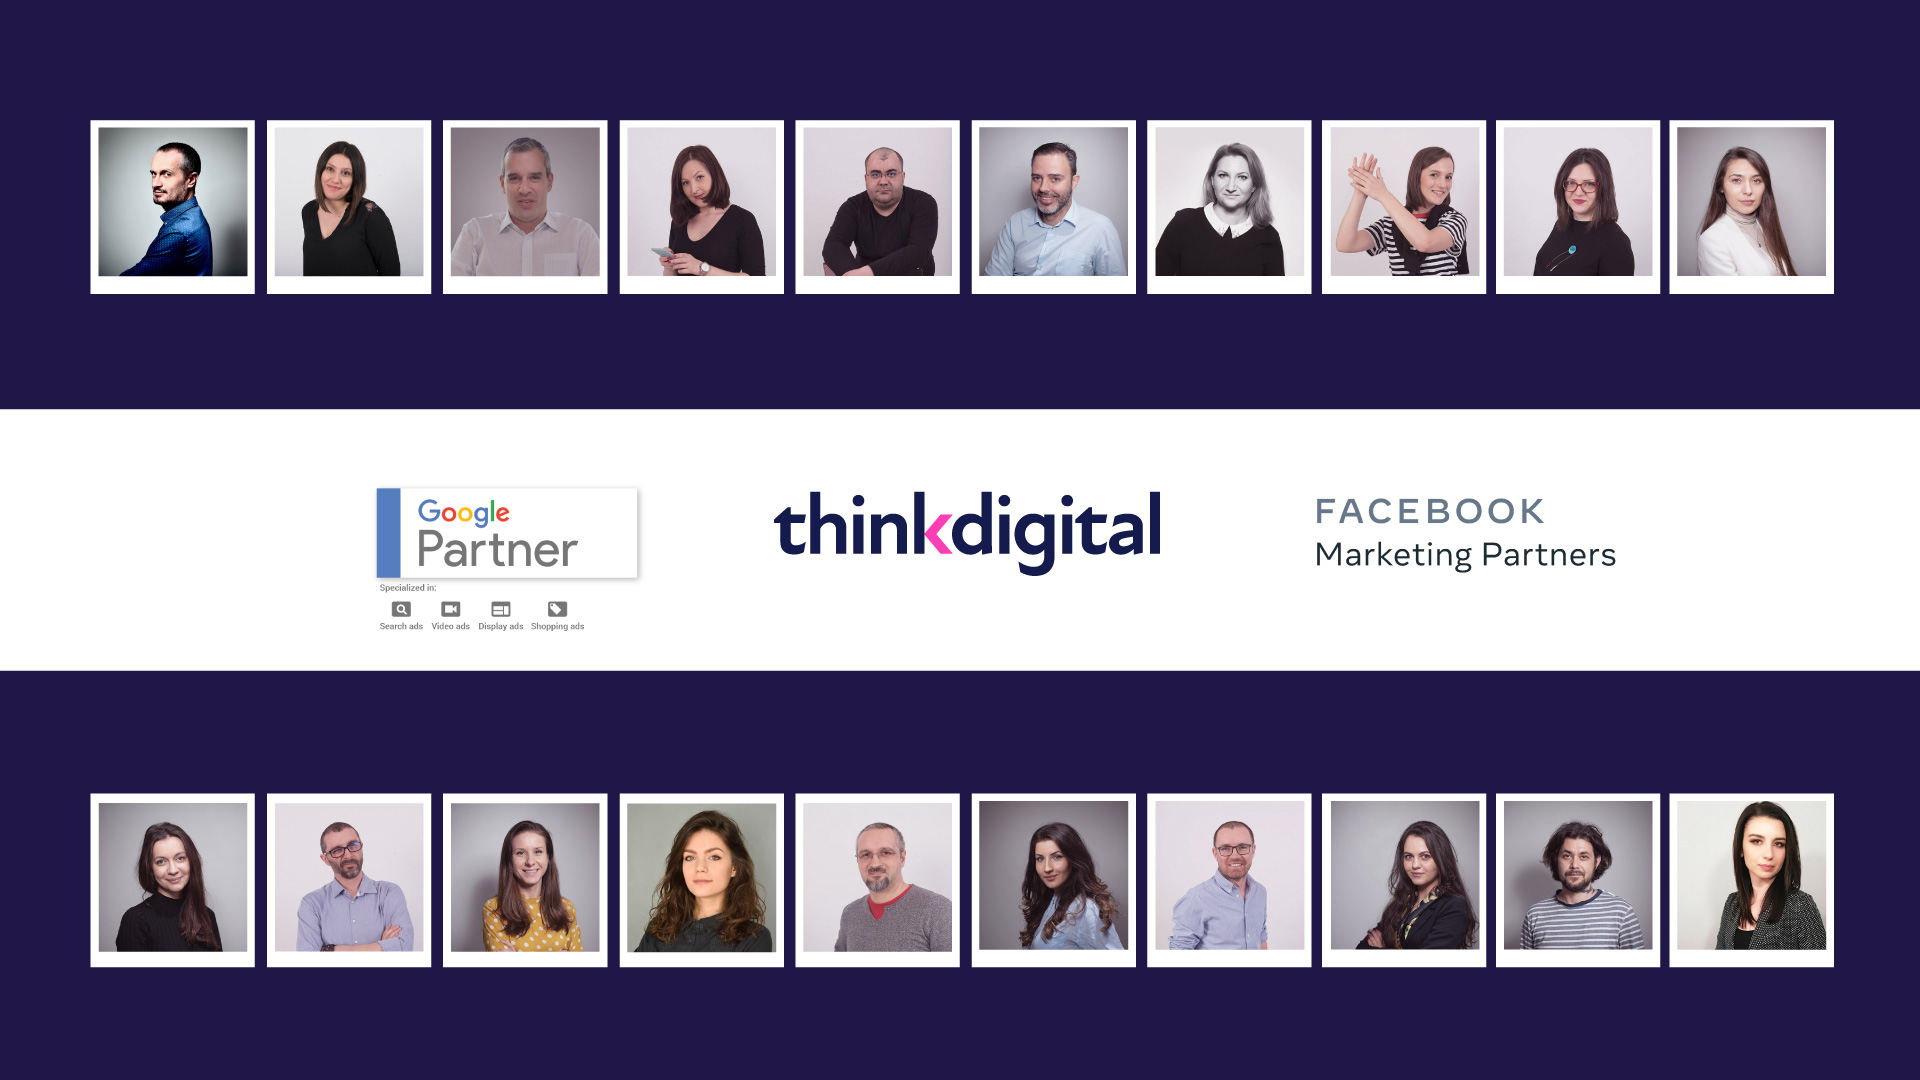 Thinkdigital a devenit Google Partner și Marketing Partner Facebook